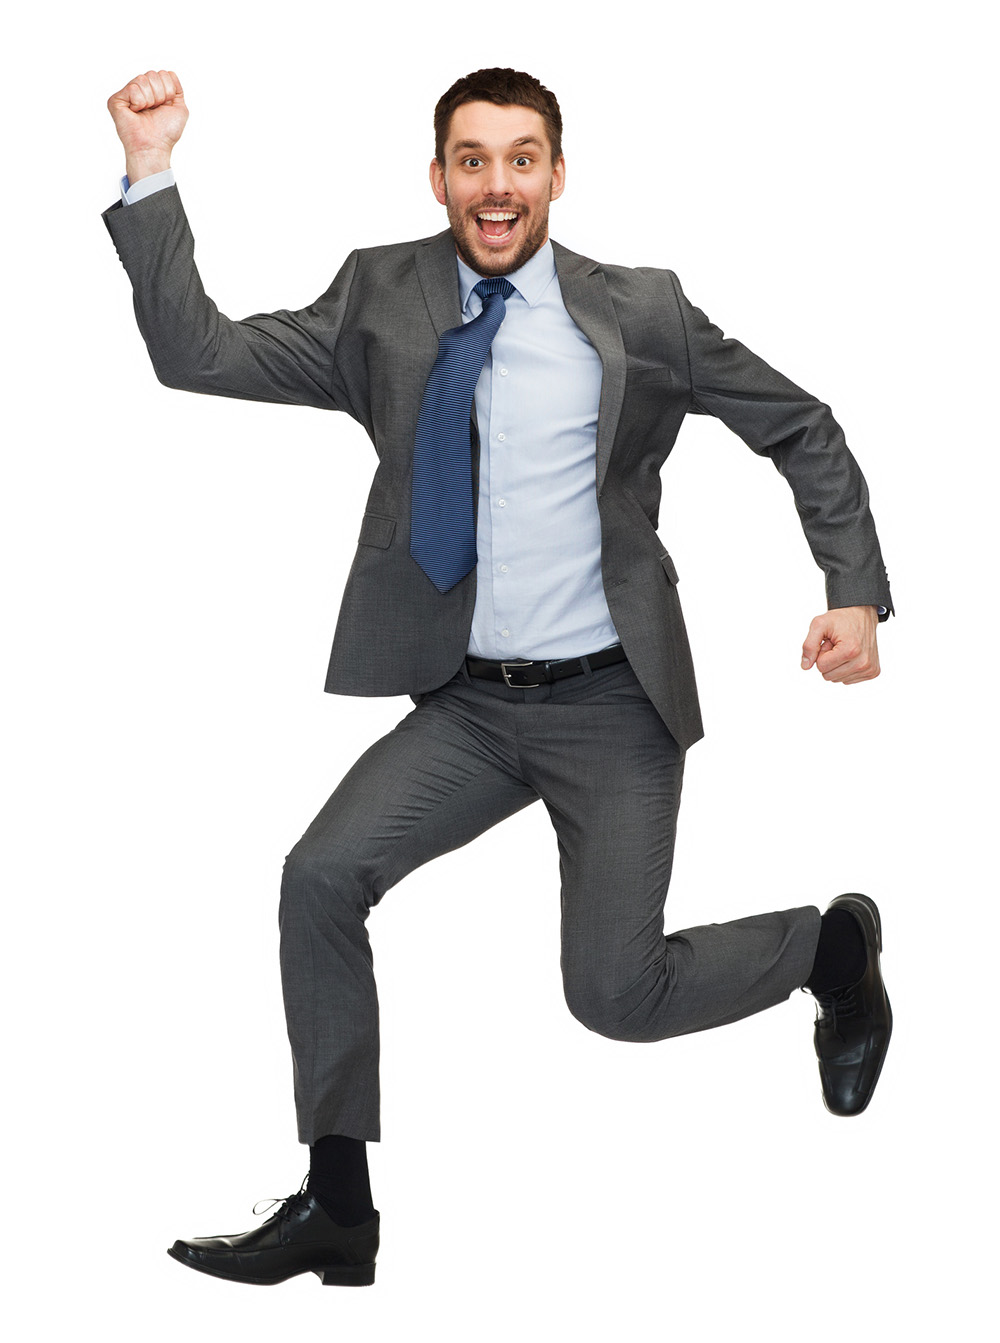 business and education concept - smiling businessman jumping